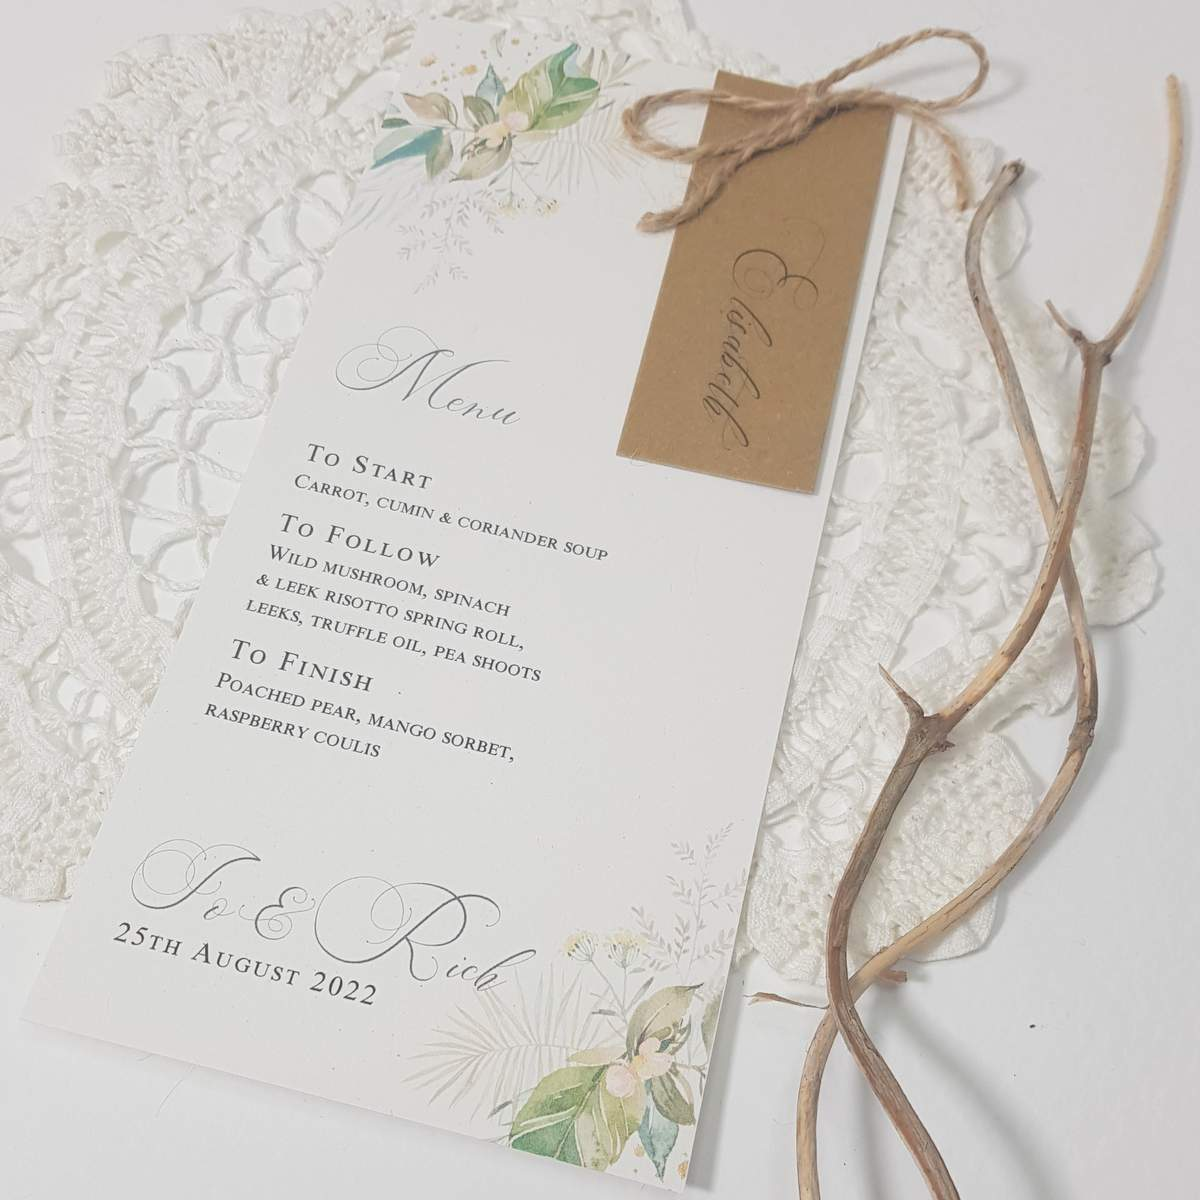 personalised wedding menu with place card attached